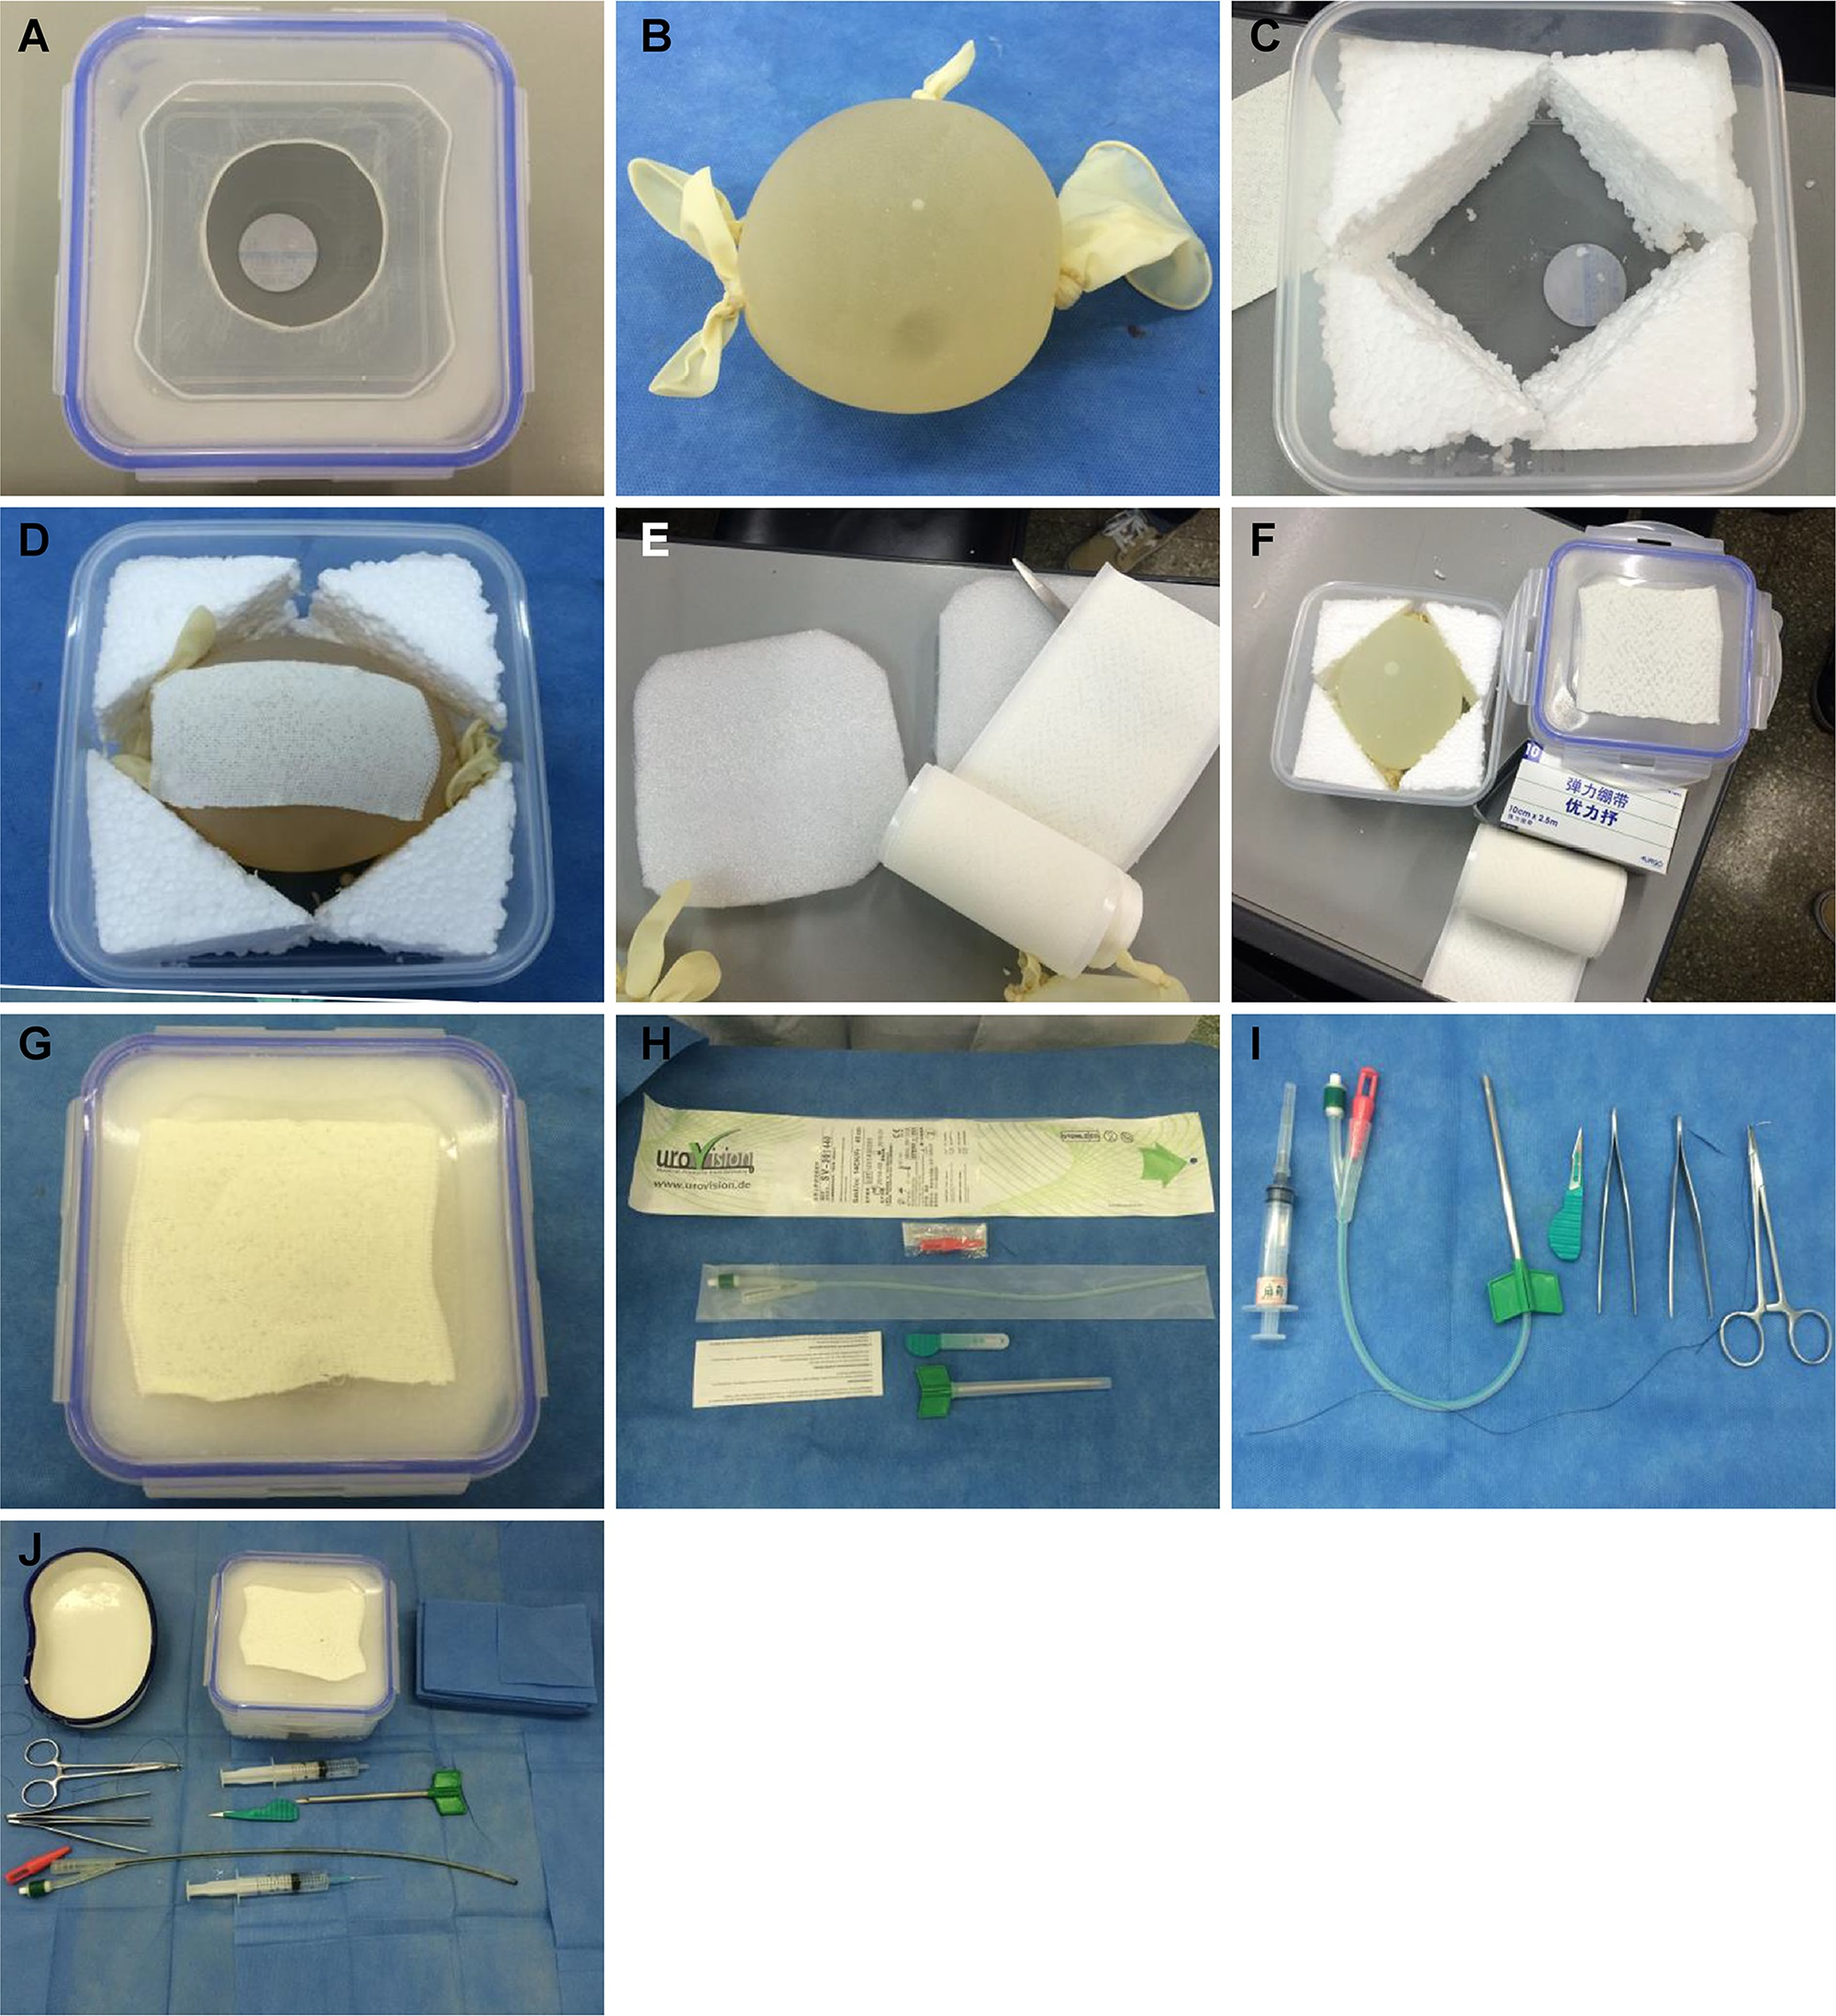 All equipment used. Figure 1A. A circular hole with a 6-cm diameter is created in the center of the microwave food container lid. Figure 1B. Large, sterile latex glove filled with sterilized water + iodine, fastening five fingers and cuff with rubber bands to create a spherical water bladder. Figure 1C. Styrofoam is used to fill the surrounding space in the microwave food container. Figure 1D. Water bladder is placed in the middle of the microwave container and covered with adhesive bandage to increase puncture resistance and prevent bursting. Figure 1E. Top of the water bladder is covered with Styrofoam to simulate the uppermost layer of the abdominal wall. Figure 1F. Surface of the microwave container is covered with adhesive bandage to simulate the skin surface. Figure 1G. Microwave container is closed tightly to form a simulation model for suprapubic paracentetic cystostomy. Figure 1H. Obturator at the urinary catheter end is used to close the end of the urinary catheter to allow monitoring of the effluent. Figure 1I. A 5-ml syringe simulates local anesthesia to the skin and is used to inject water into the bladder through the urinary catheter for fixation. Figure 1J. Needle holder, toothed forceps, angular needle, and silk thread are used to suture and fix the urinary catheter.